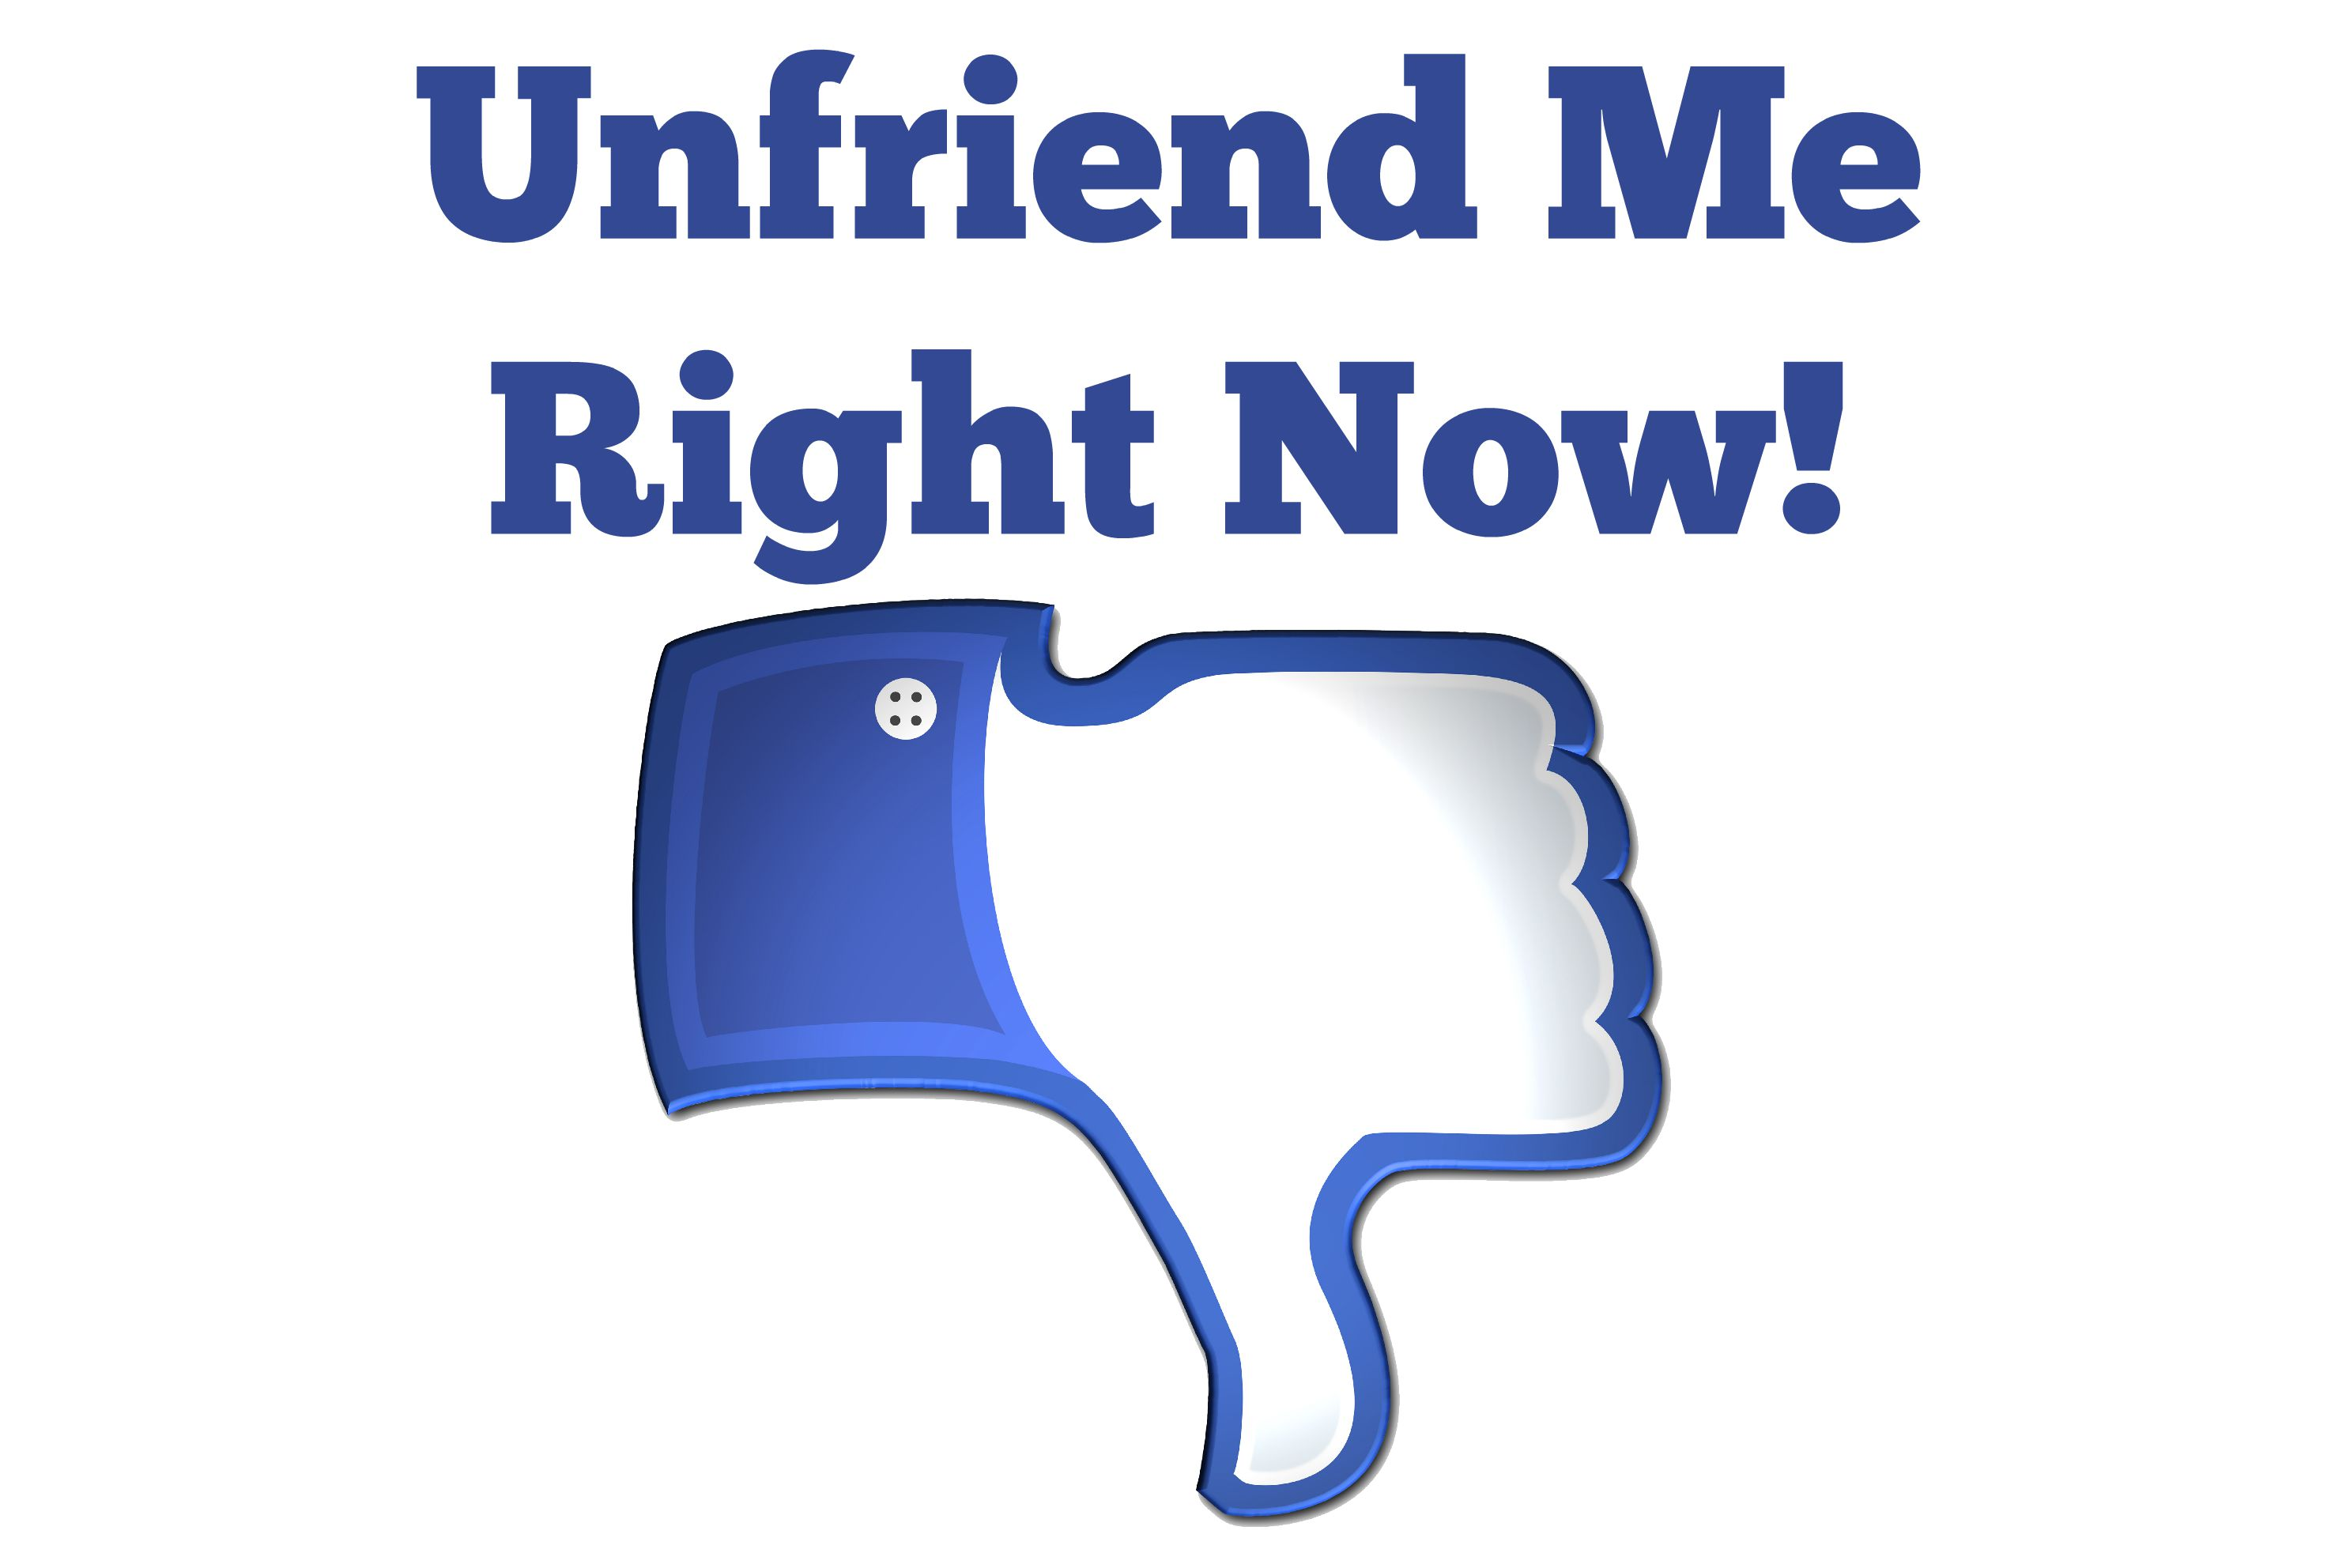 Unfriend Me Right Now!